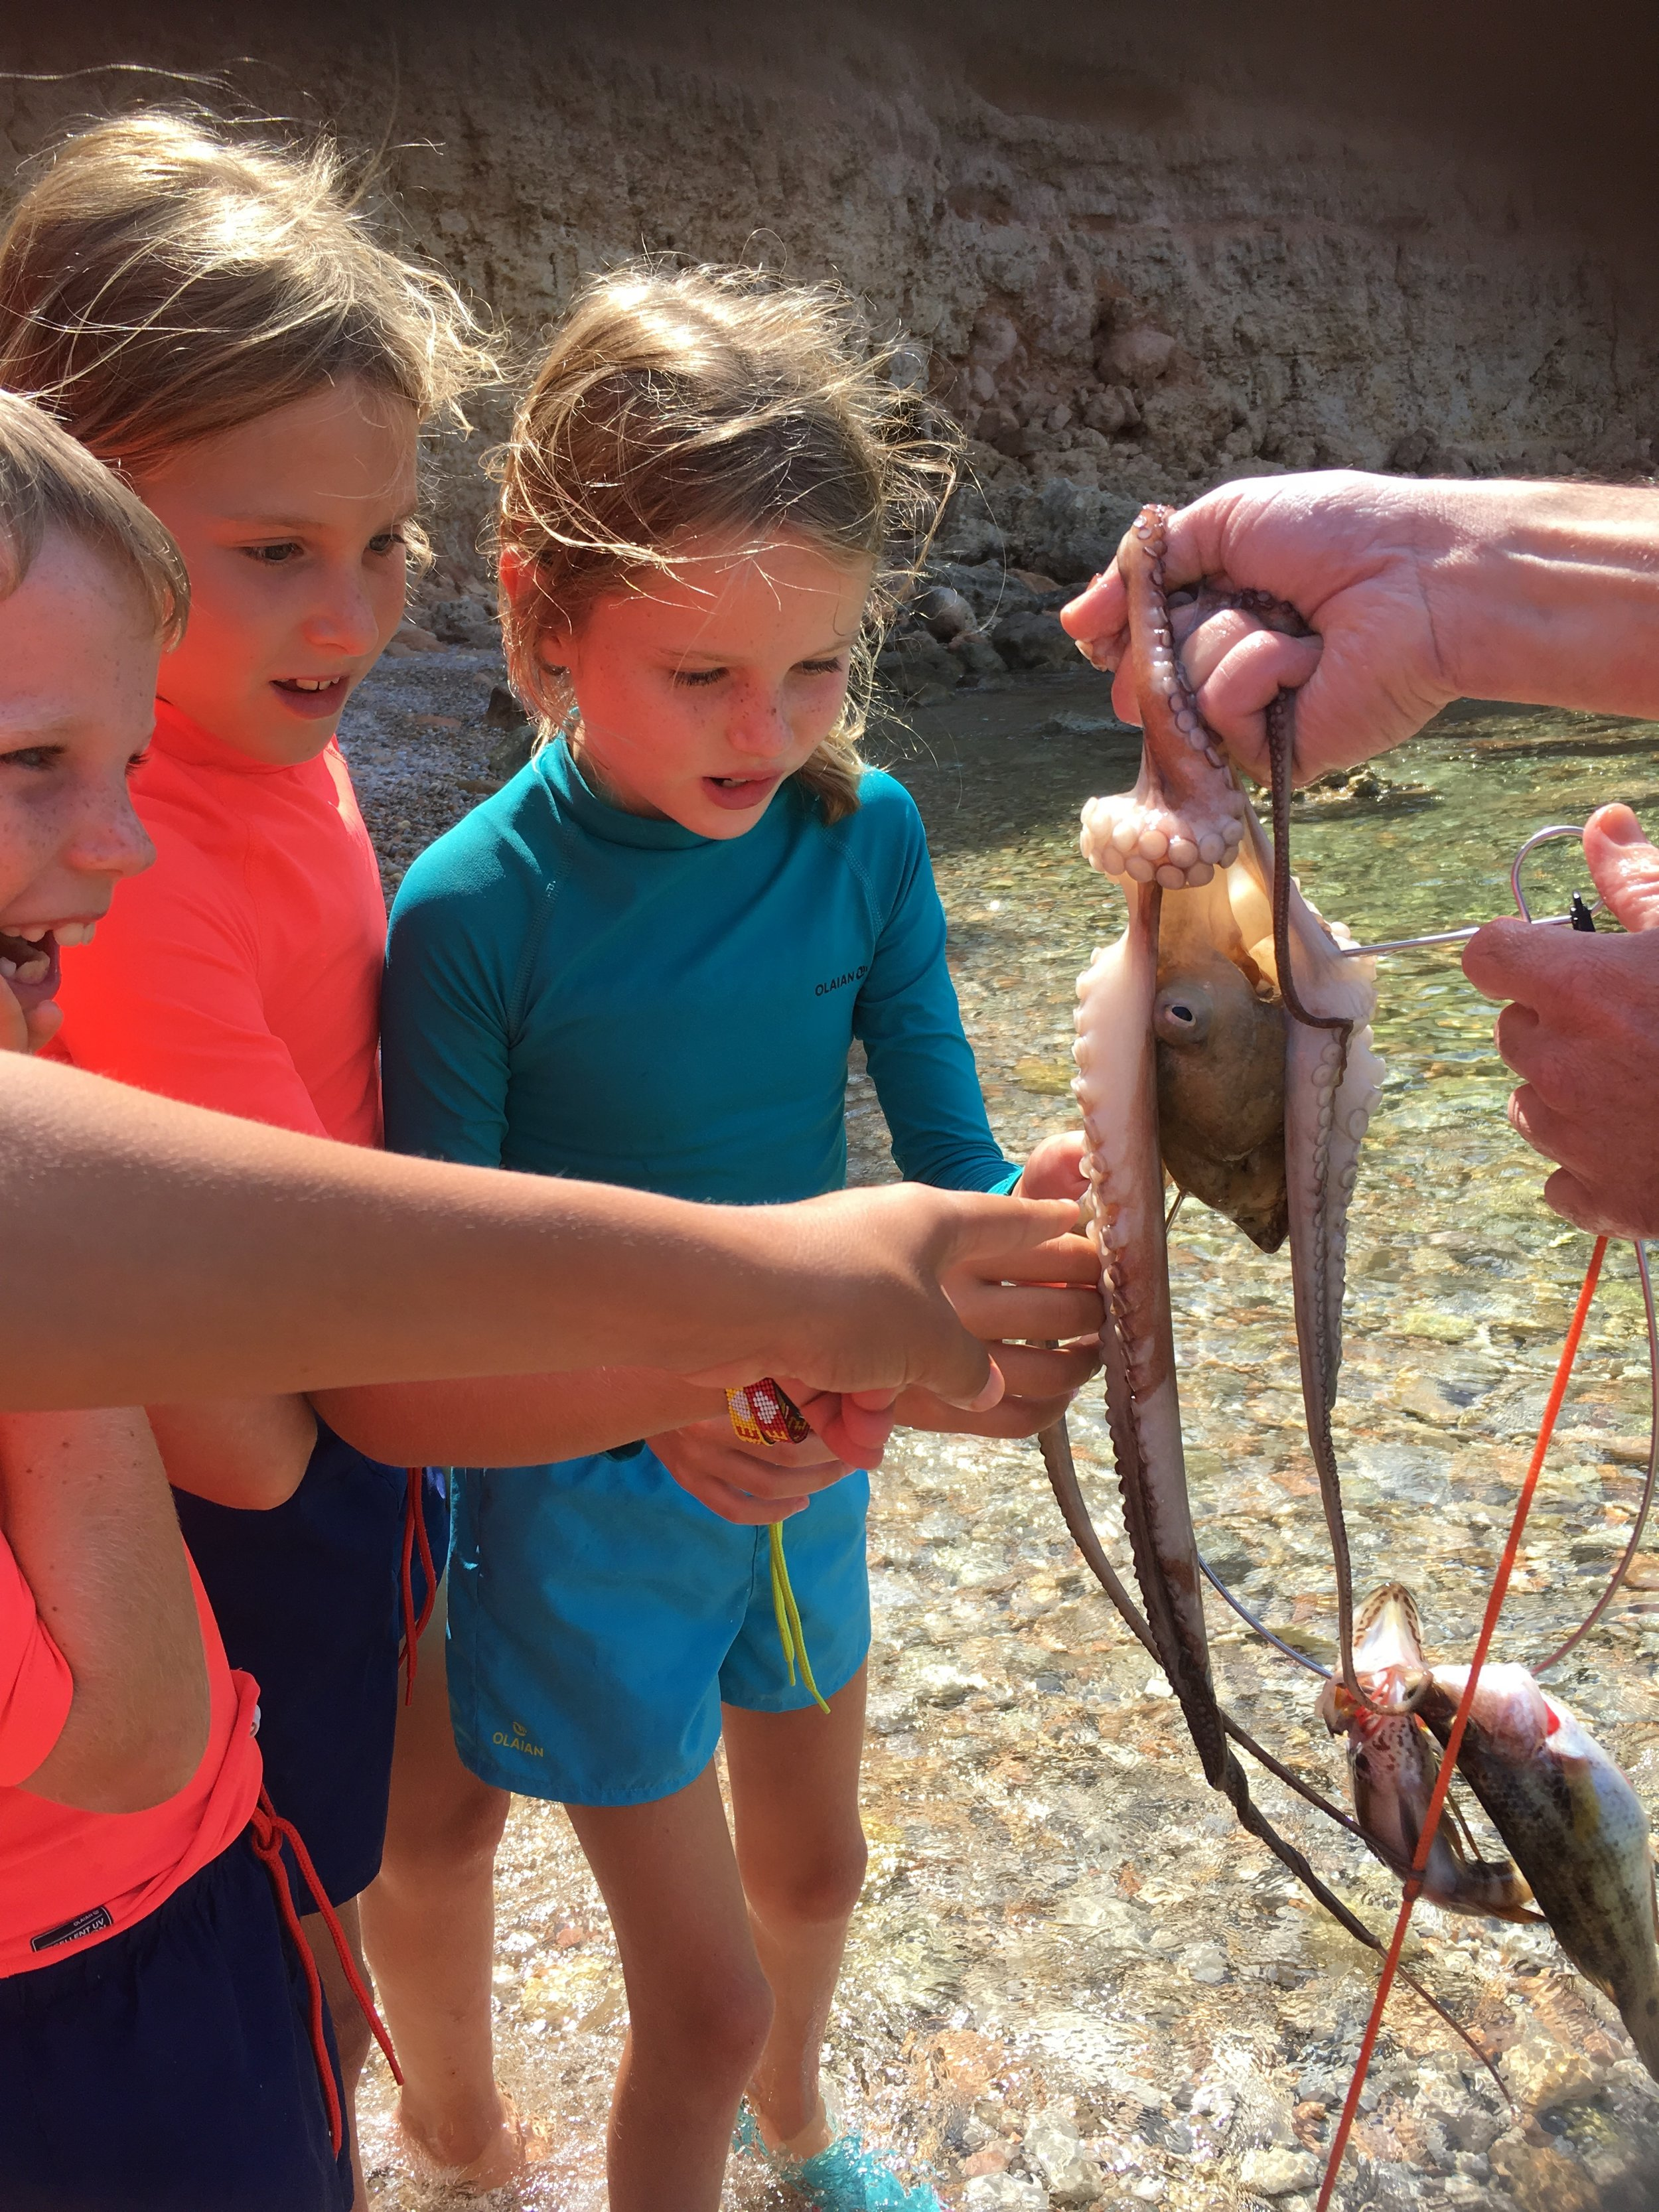 We strongly encourage interacting with nature. We'll be doing our best to catch and release wildlife. Here some spear fisherman showed us some of their catch.